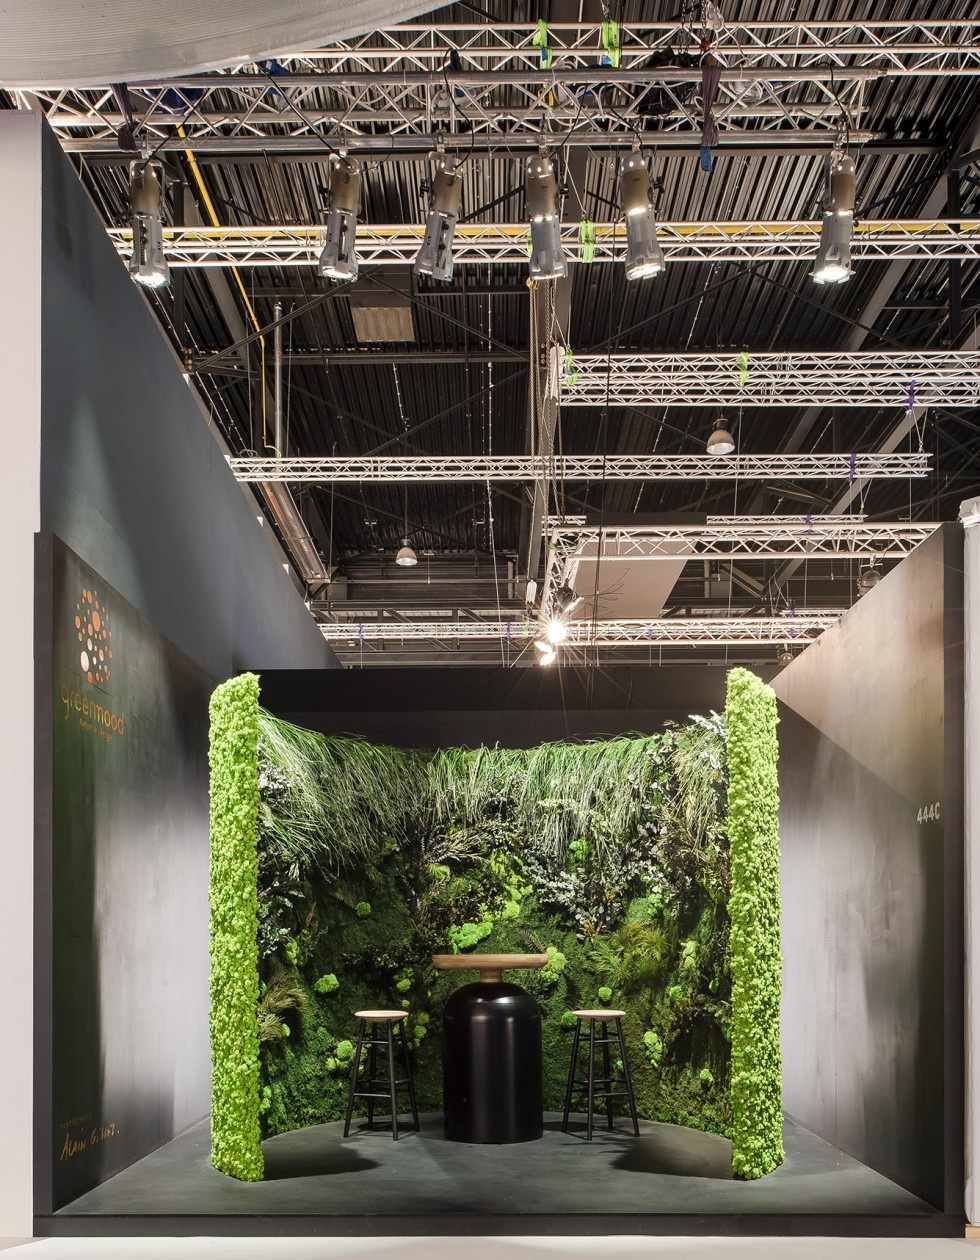 Biennale Interieur exhibition booth for Green Mood by Alain Giles.